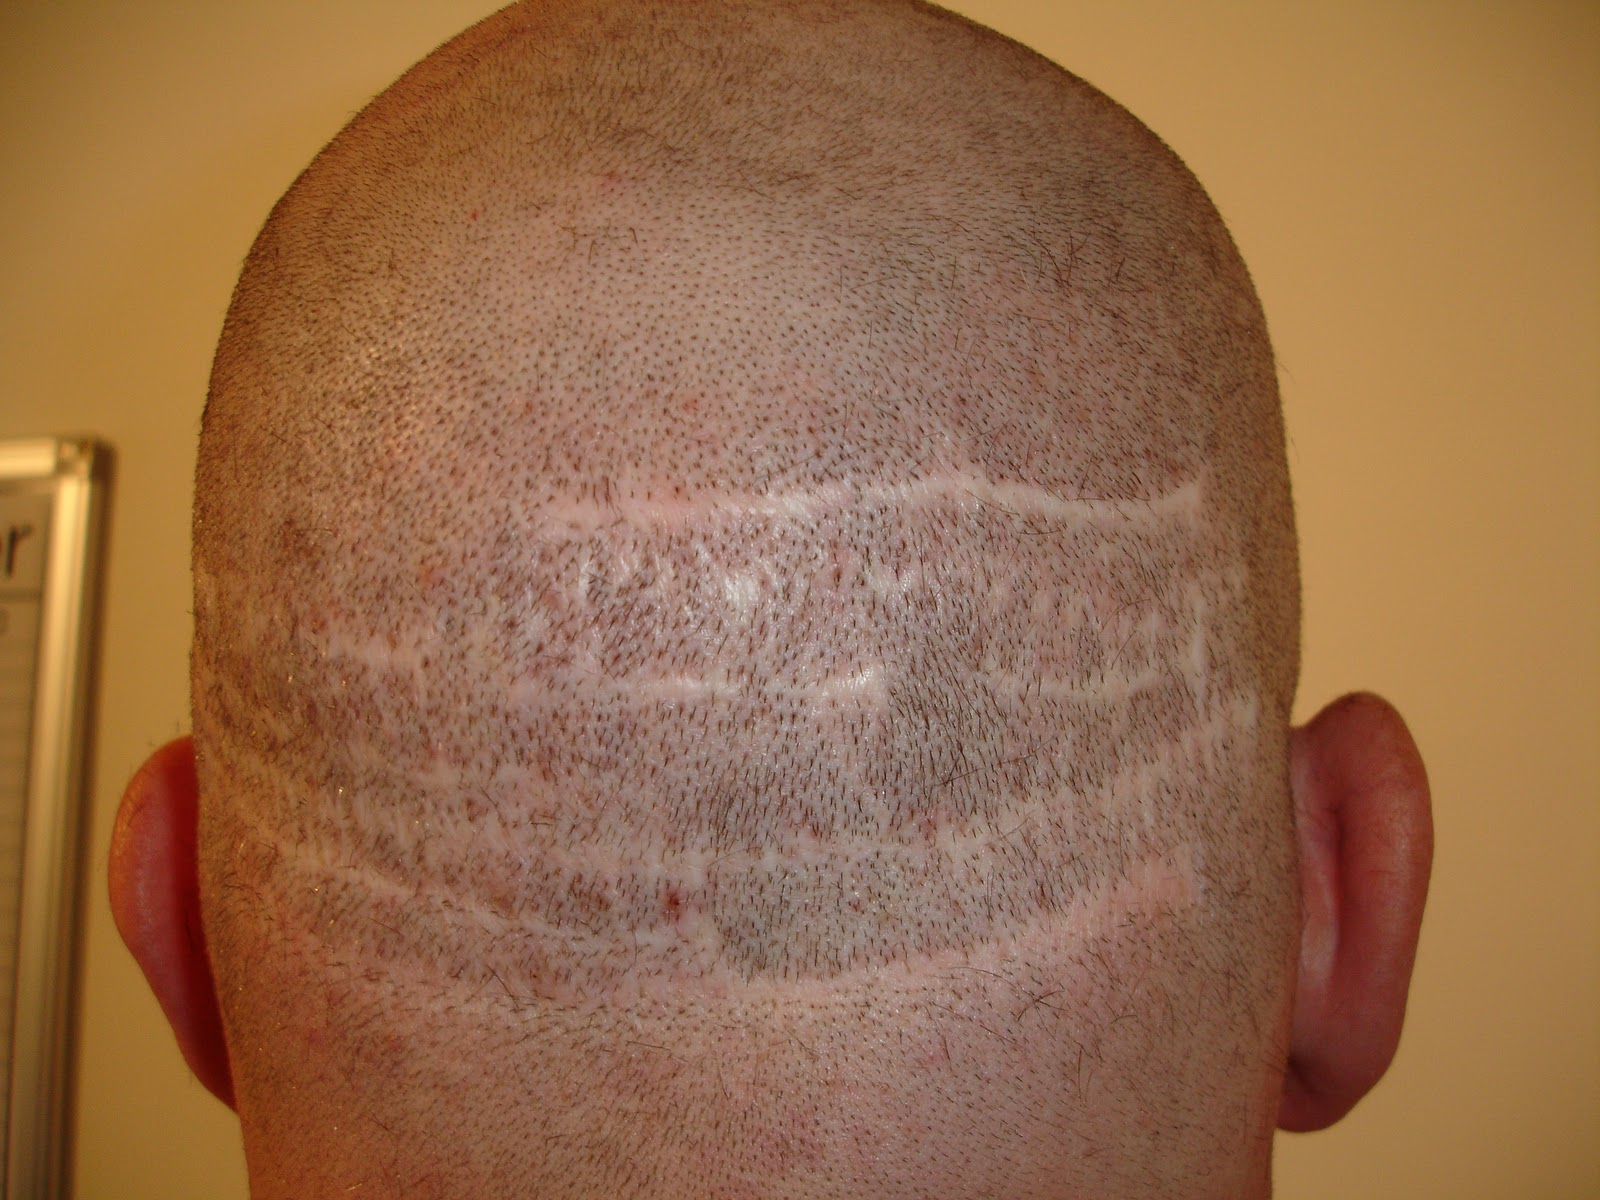 Shall Hair transplant scar shaved agree, the